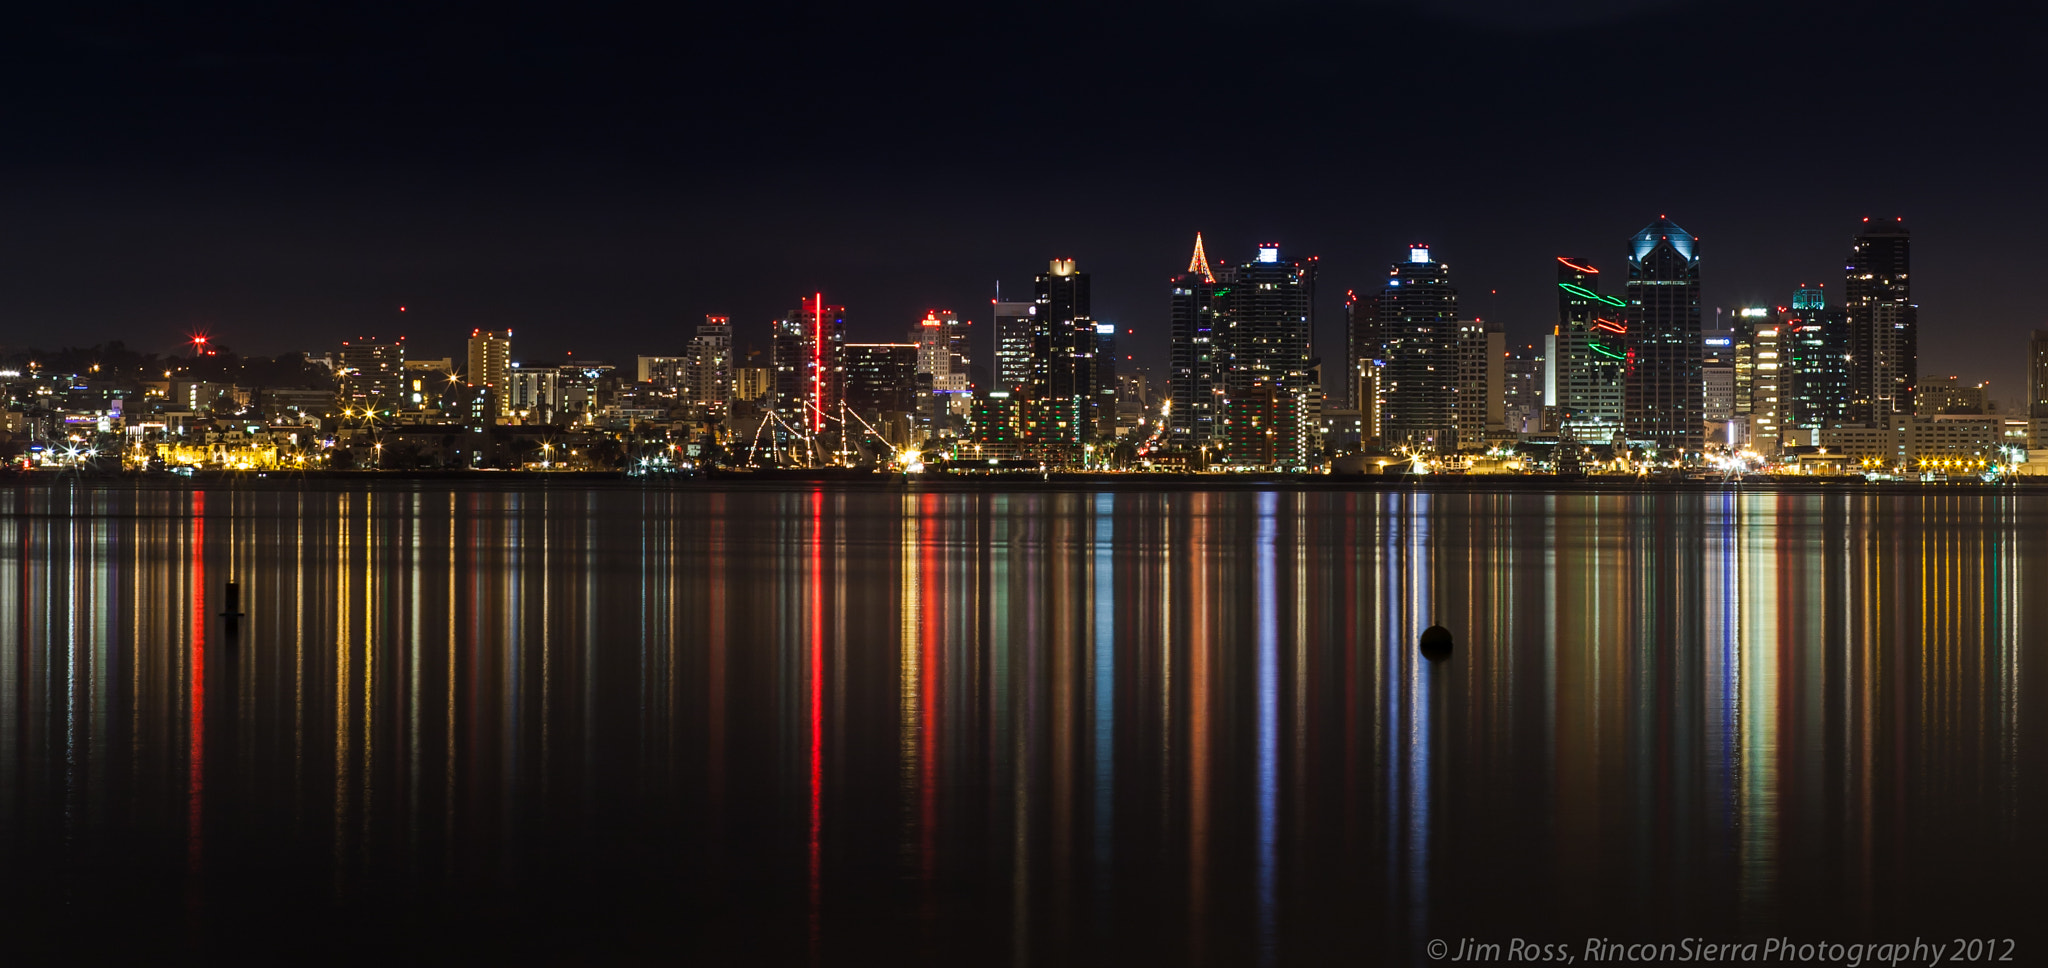 Photograph Merry Christmas From San Diego!!! by Jim Ross on 500px